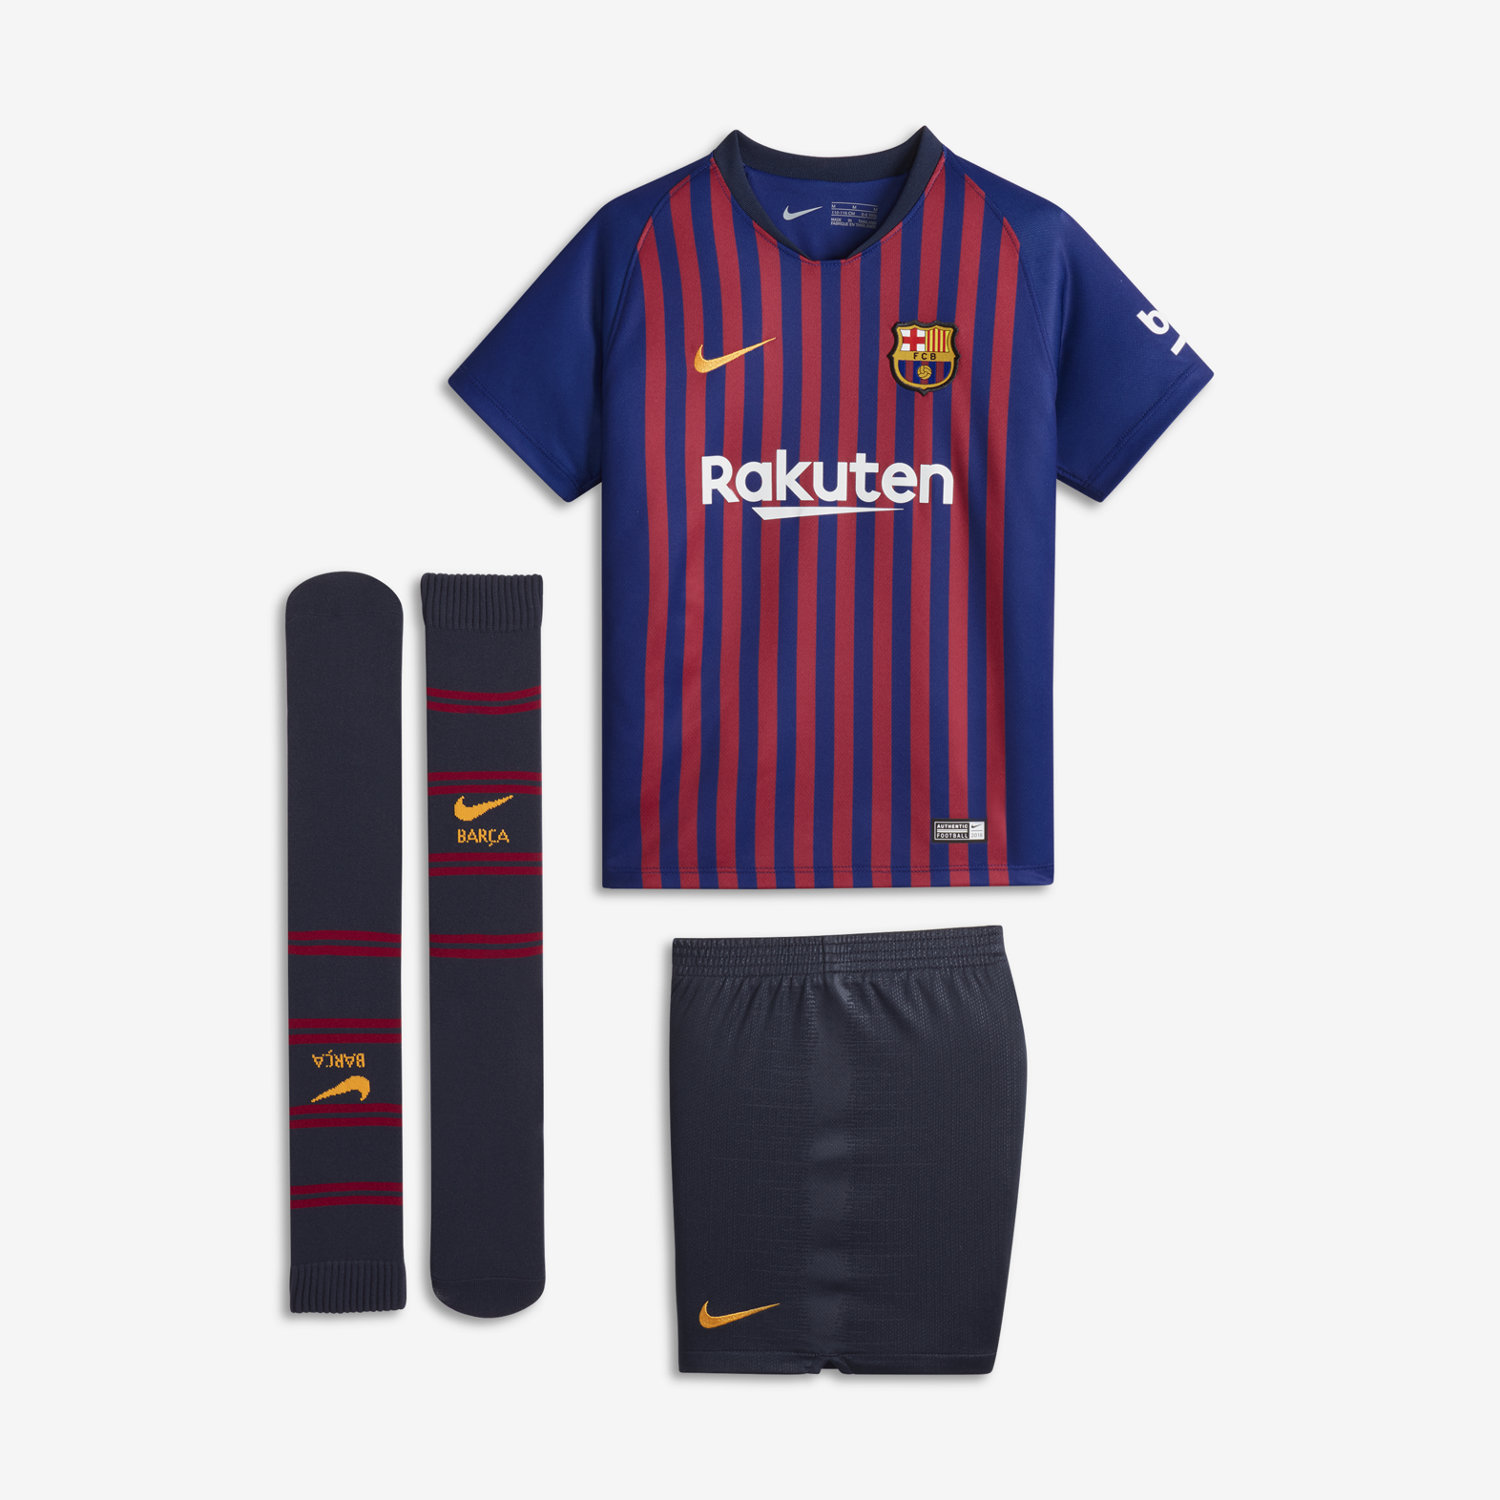 b6df7b362 2018 19 FC Barcelona Stadium Home Younger Kids  Football Kit. Nike ...